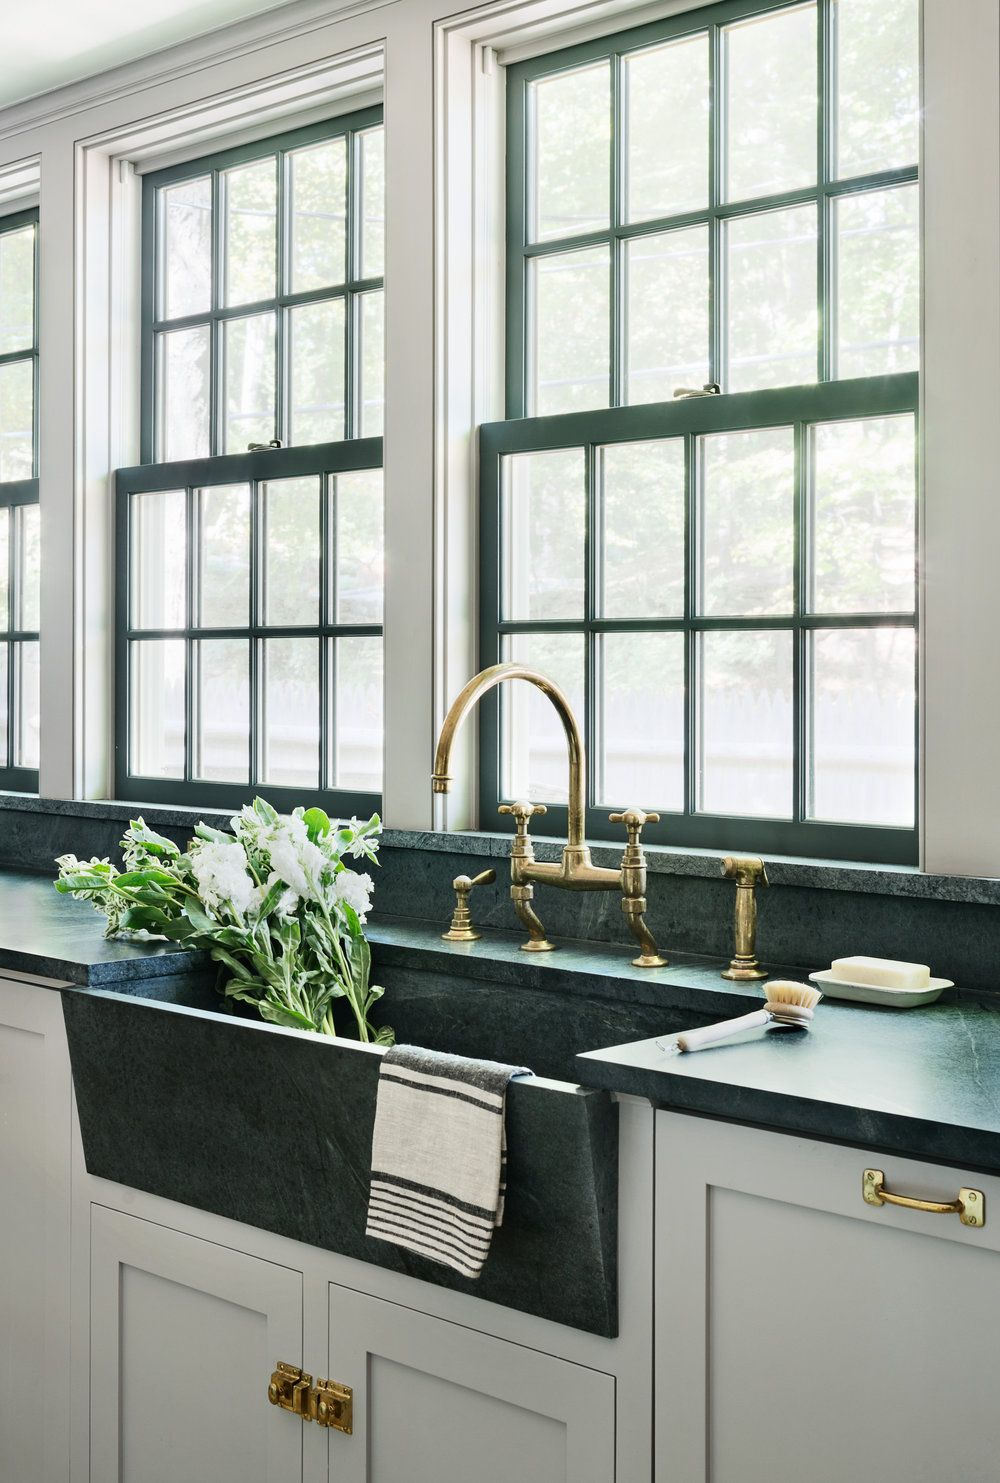 Kitchen window over sink  friday inspiration our top pinned images this week  studio mcgee